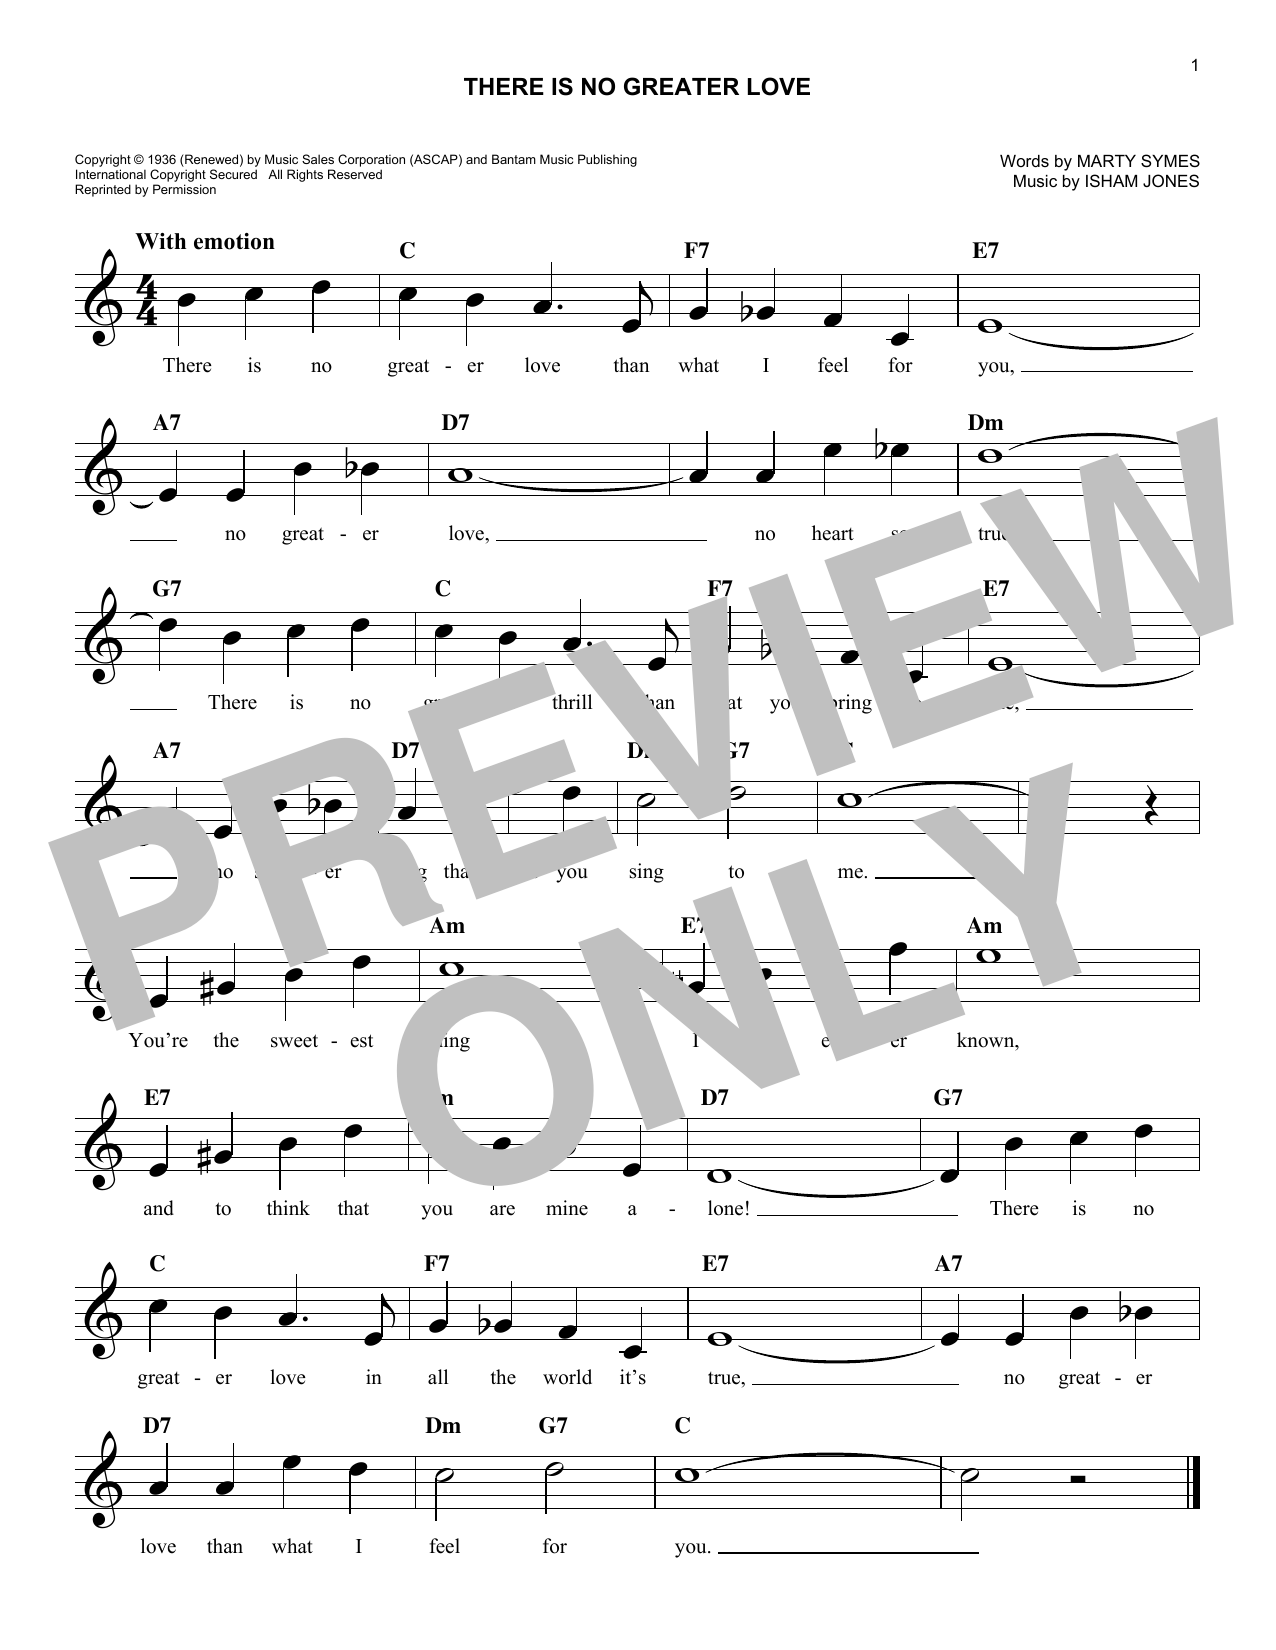 Isham Jones (There Is) No Greater Love sheet music notes and chords. Download Printable PDF.